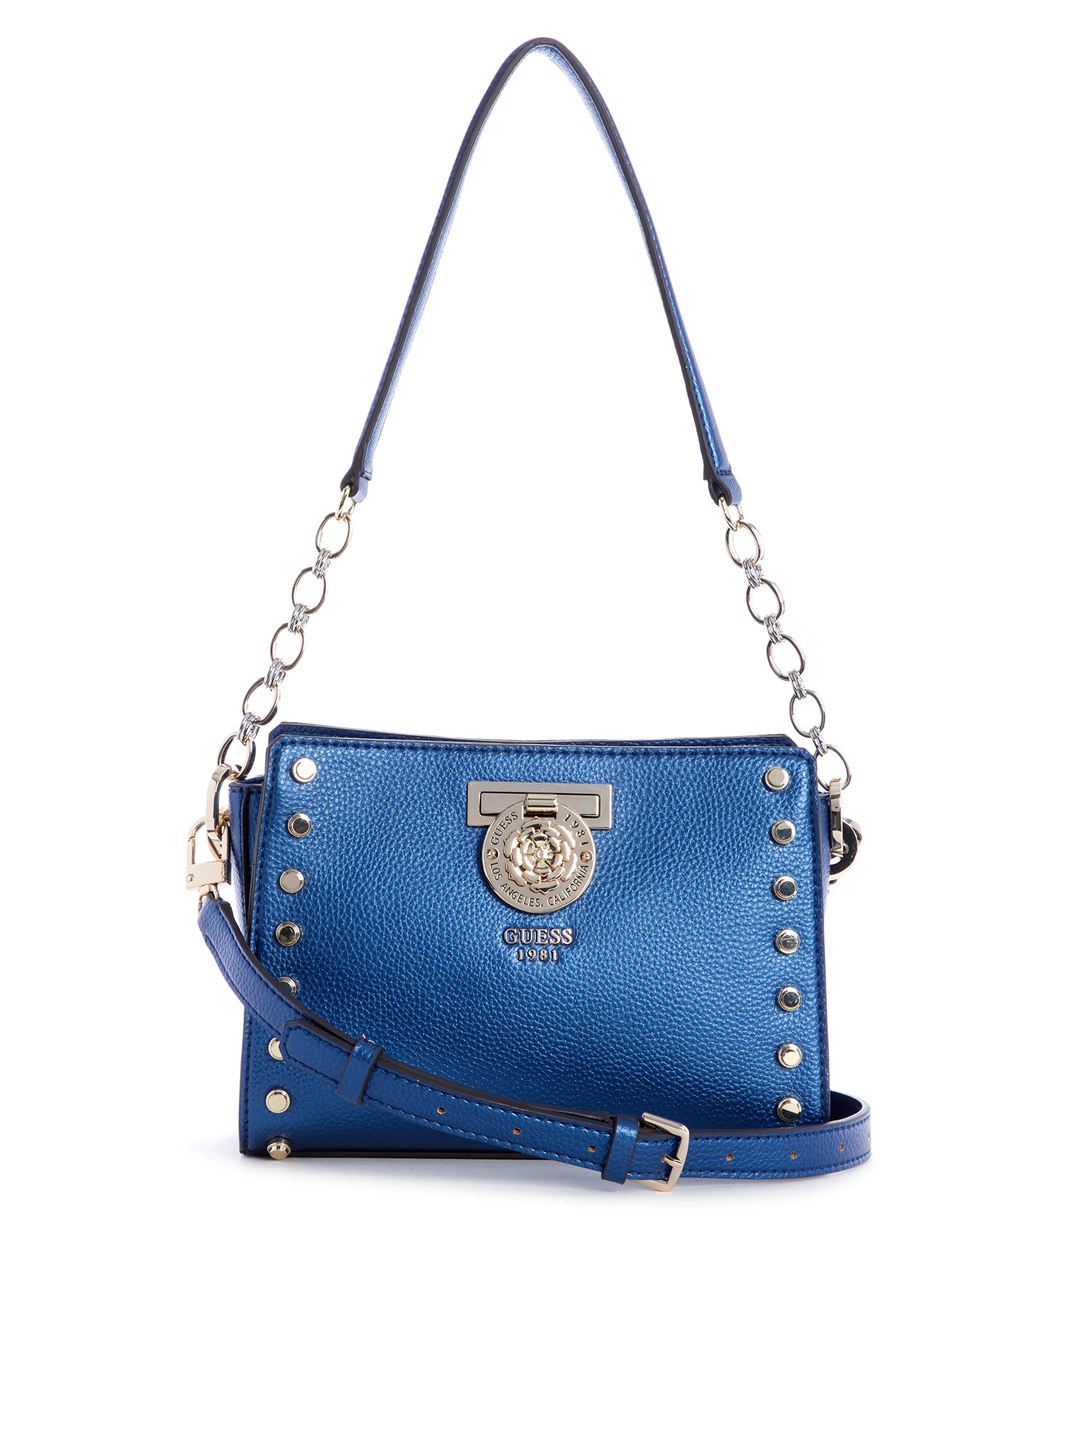 Buy GUESS Blue Solid Shoulder Bag - Handbags for Women 8113119  a81a781e27fe8